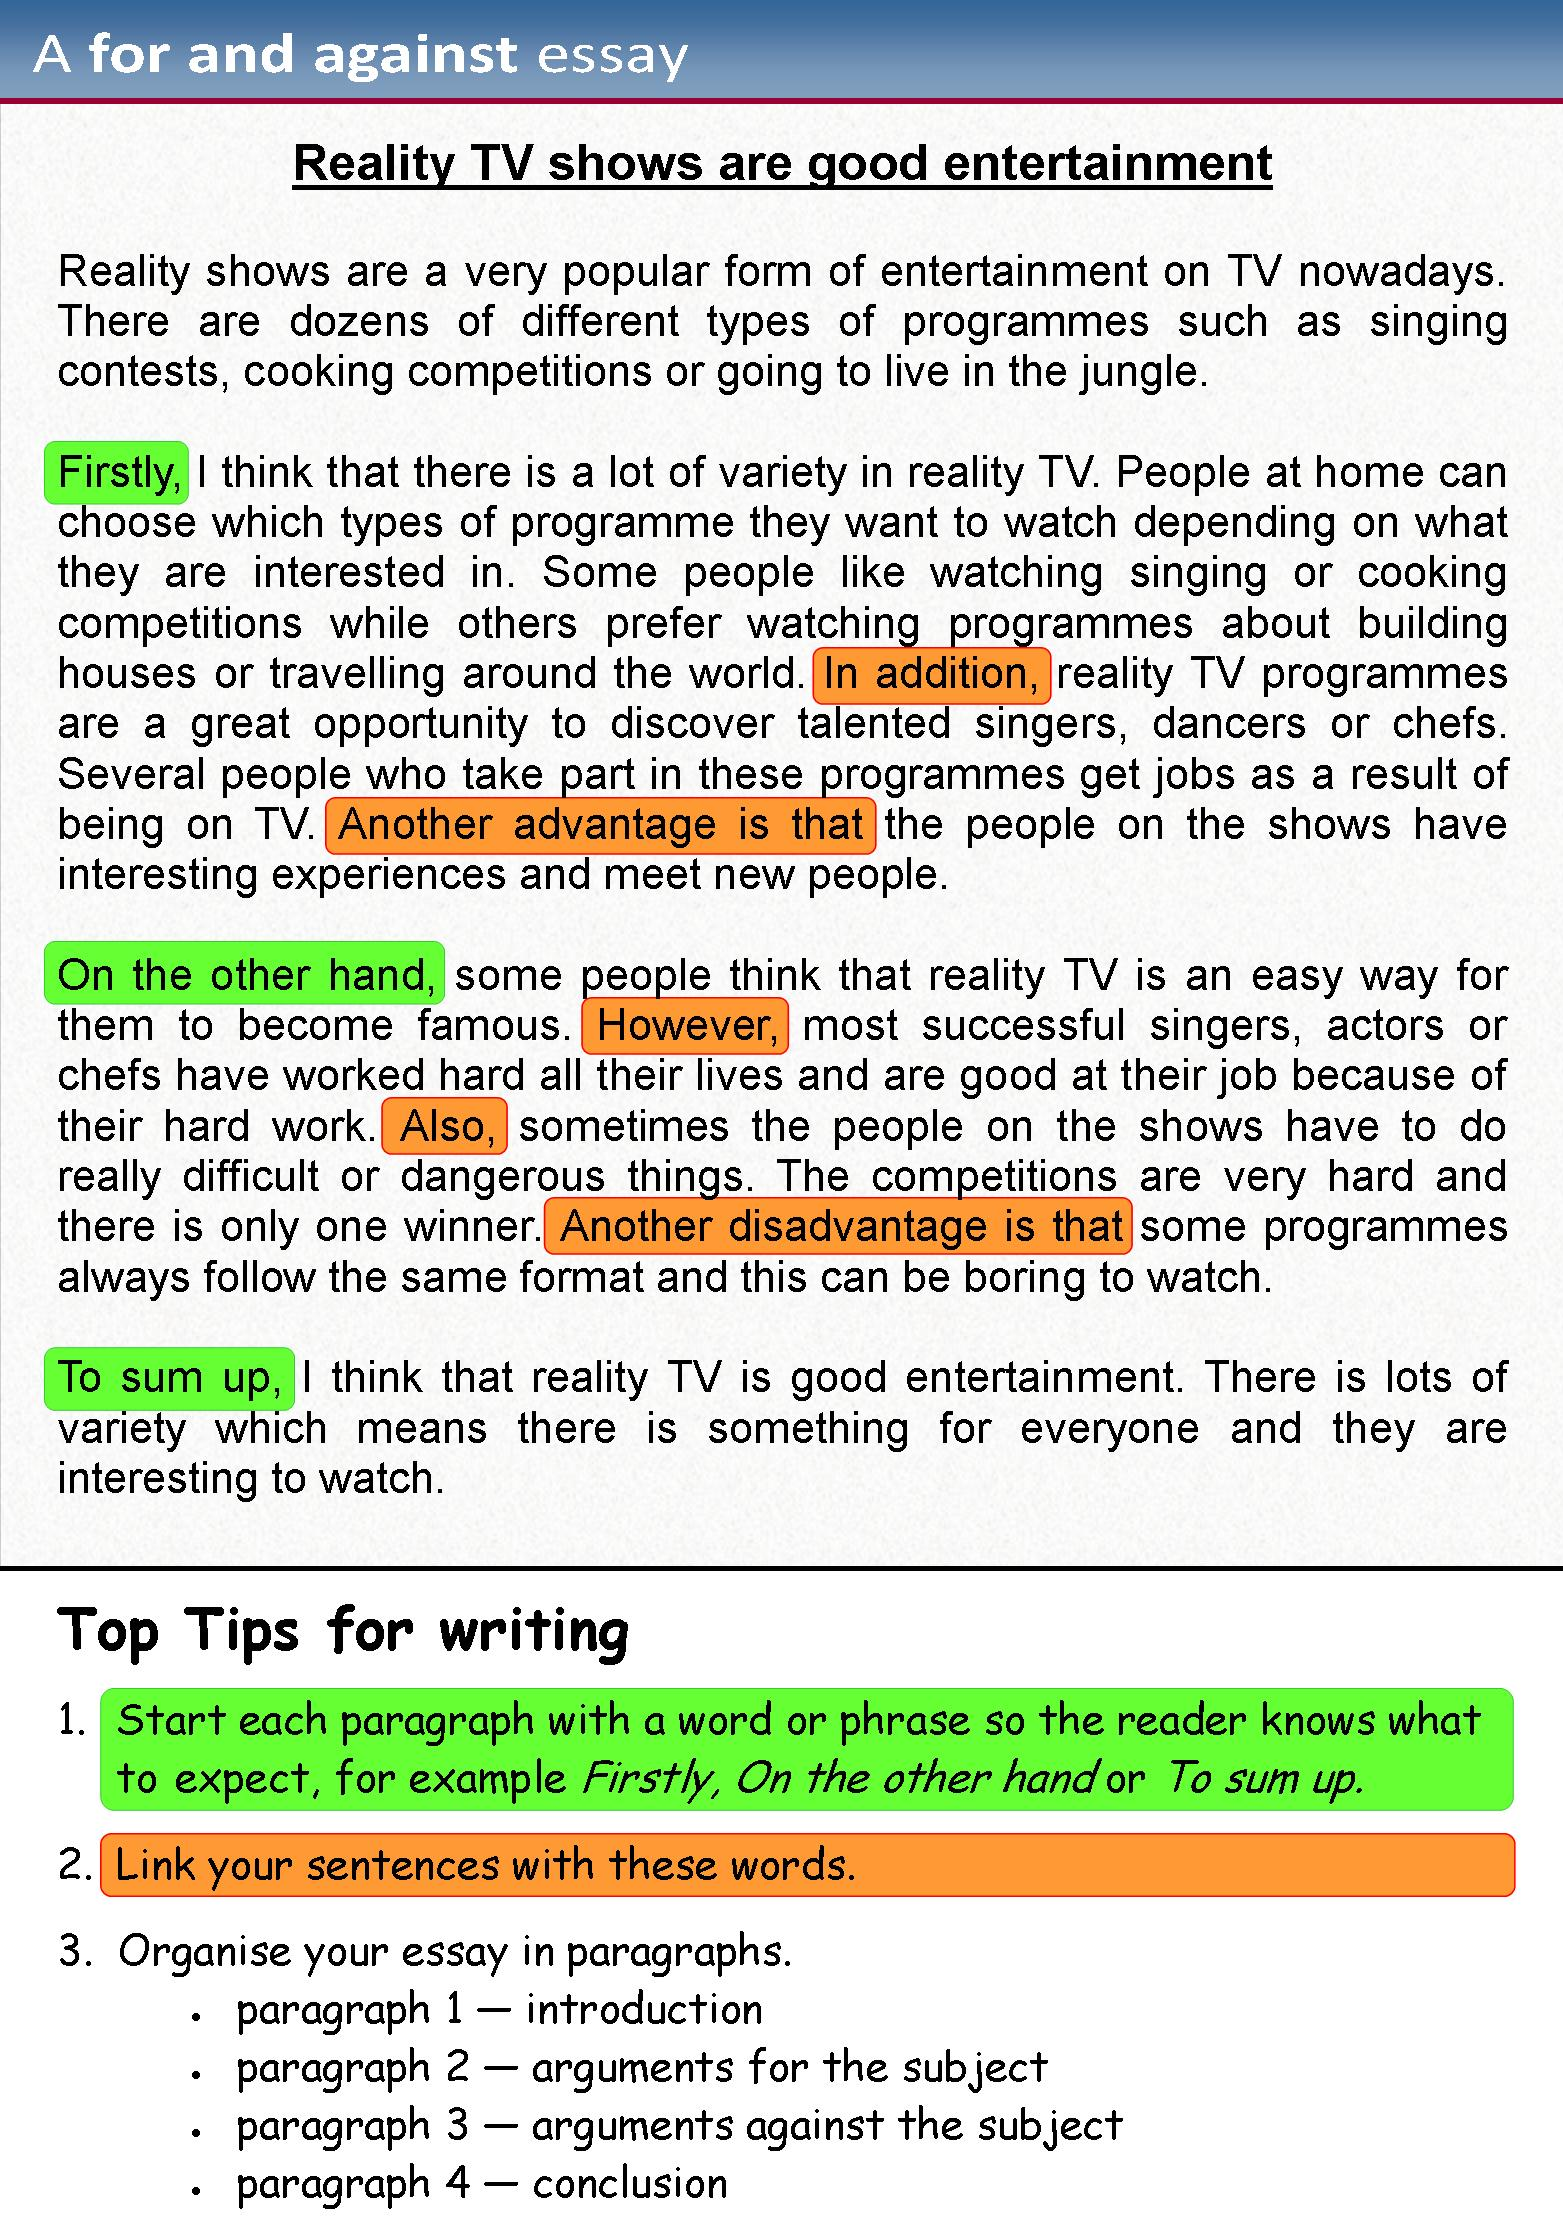 019 Essay Example How To Write And For Against 1 Unique An Paper In Apa Format Conclusion Mla Full